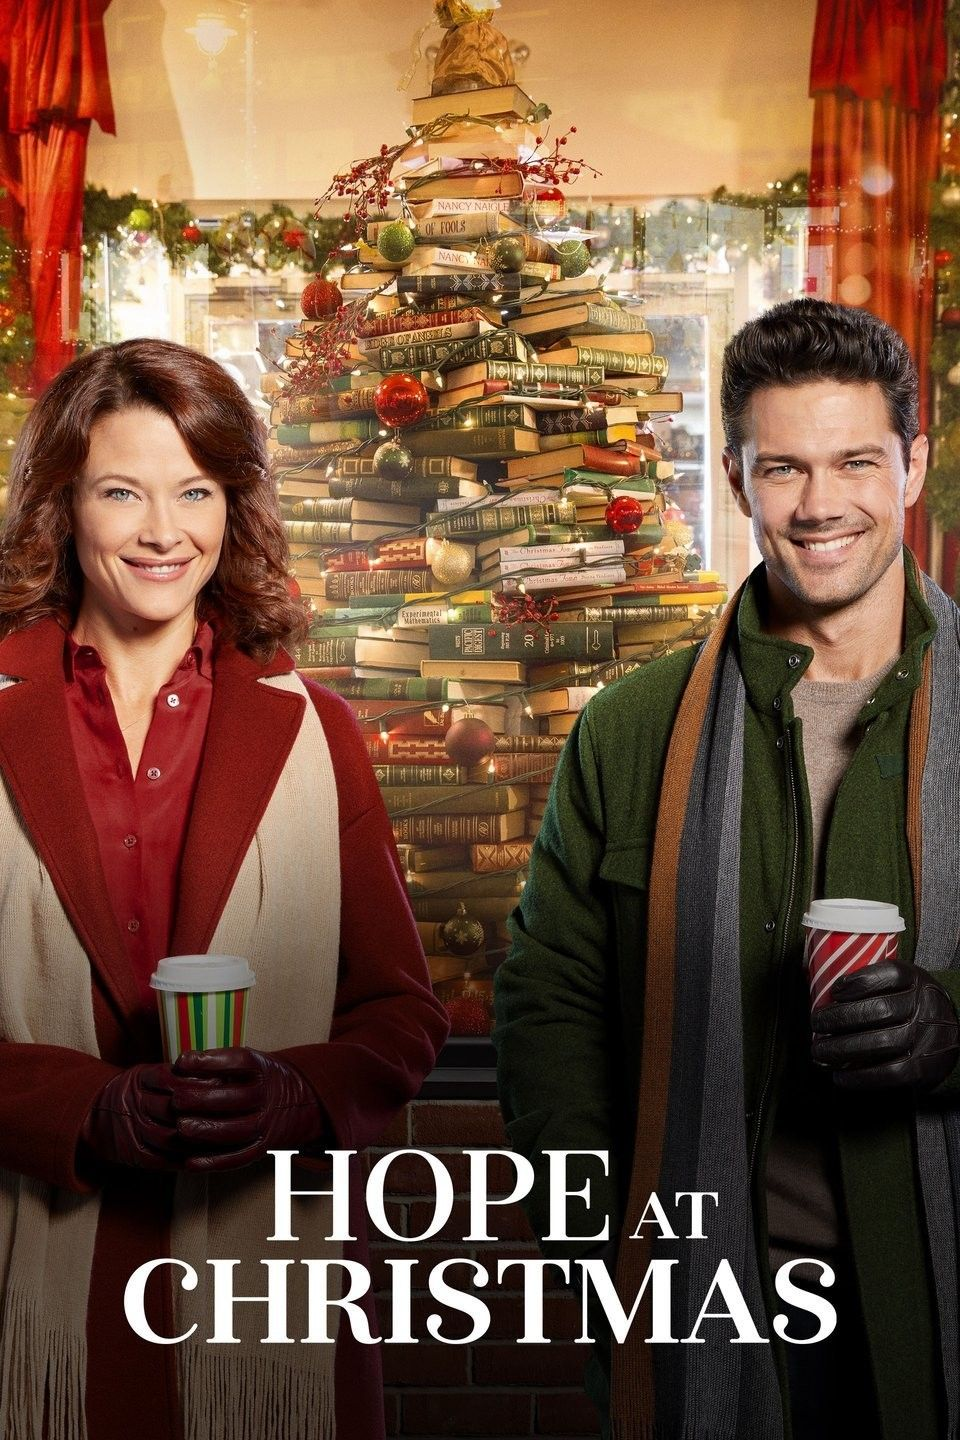 This Was A Great Christmas Movie From Hallmark This Woman Comes From New York To Her Gran Hallmark Channel Christmas Movies Hallmark Movies Christmas Movies